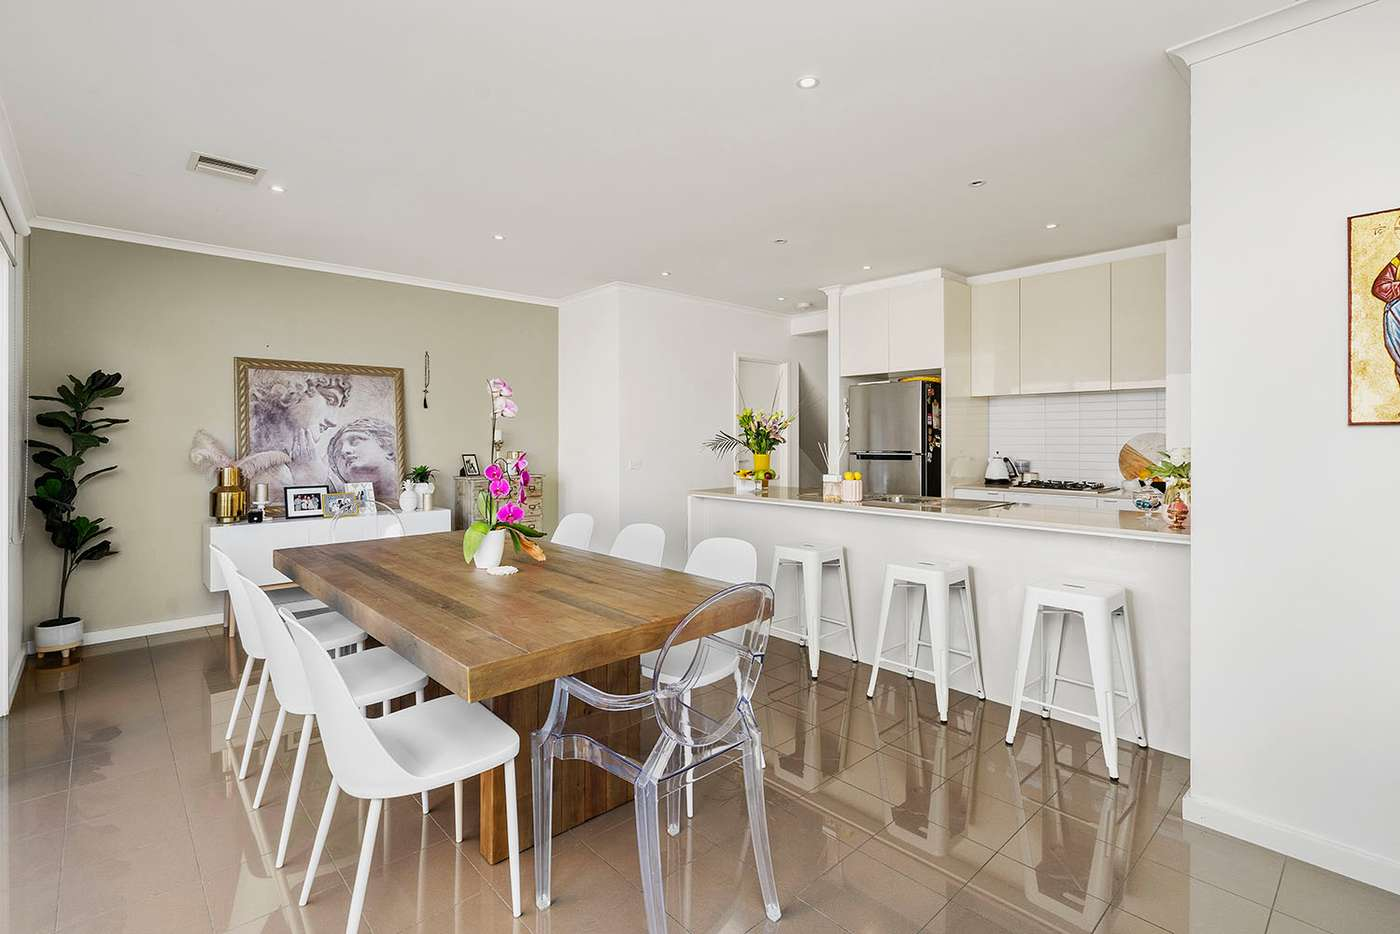 Main view of Homely townhouse listing, 8 Bernie Smith Street, Mulgrave VIC 3170